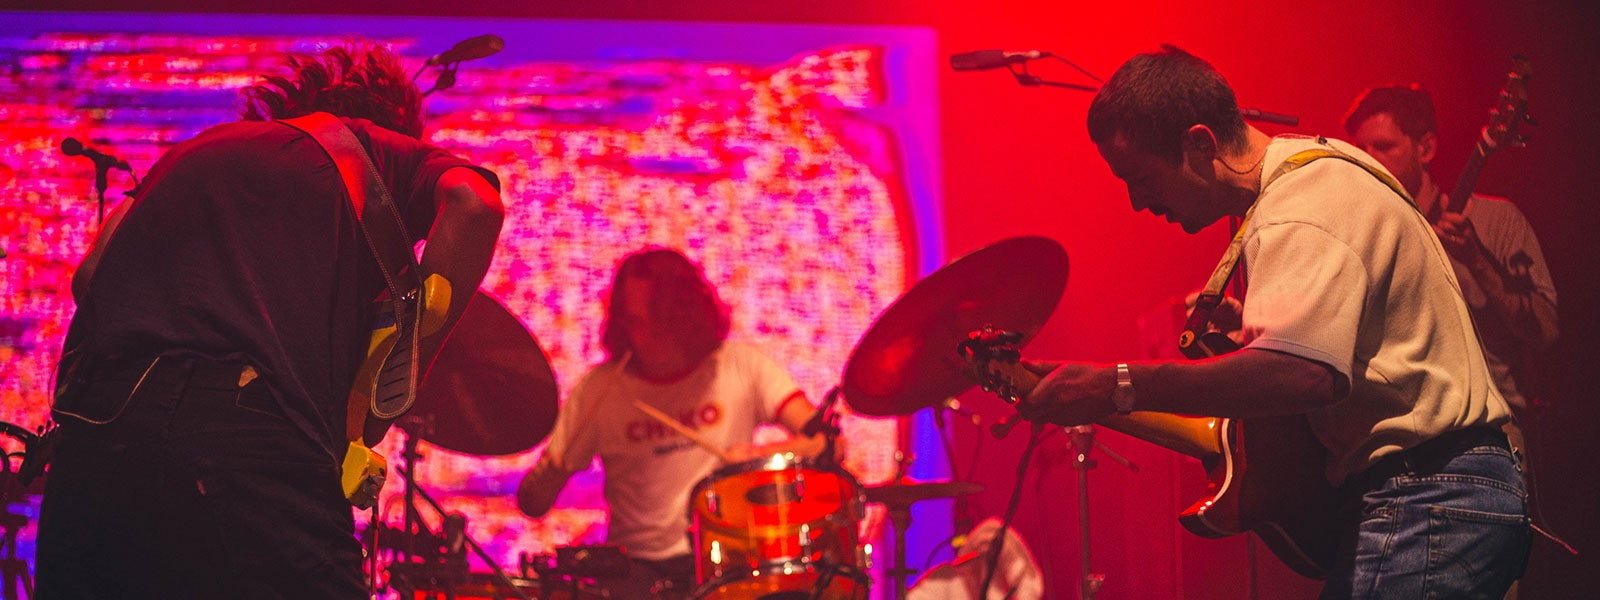 Timbre Concerts Presents: King Gizzard & The Lizard Wizard